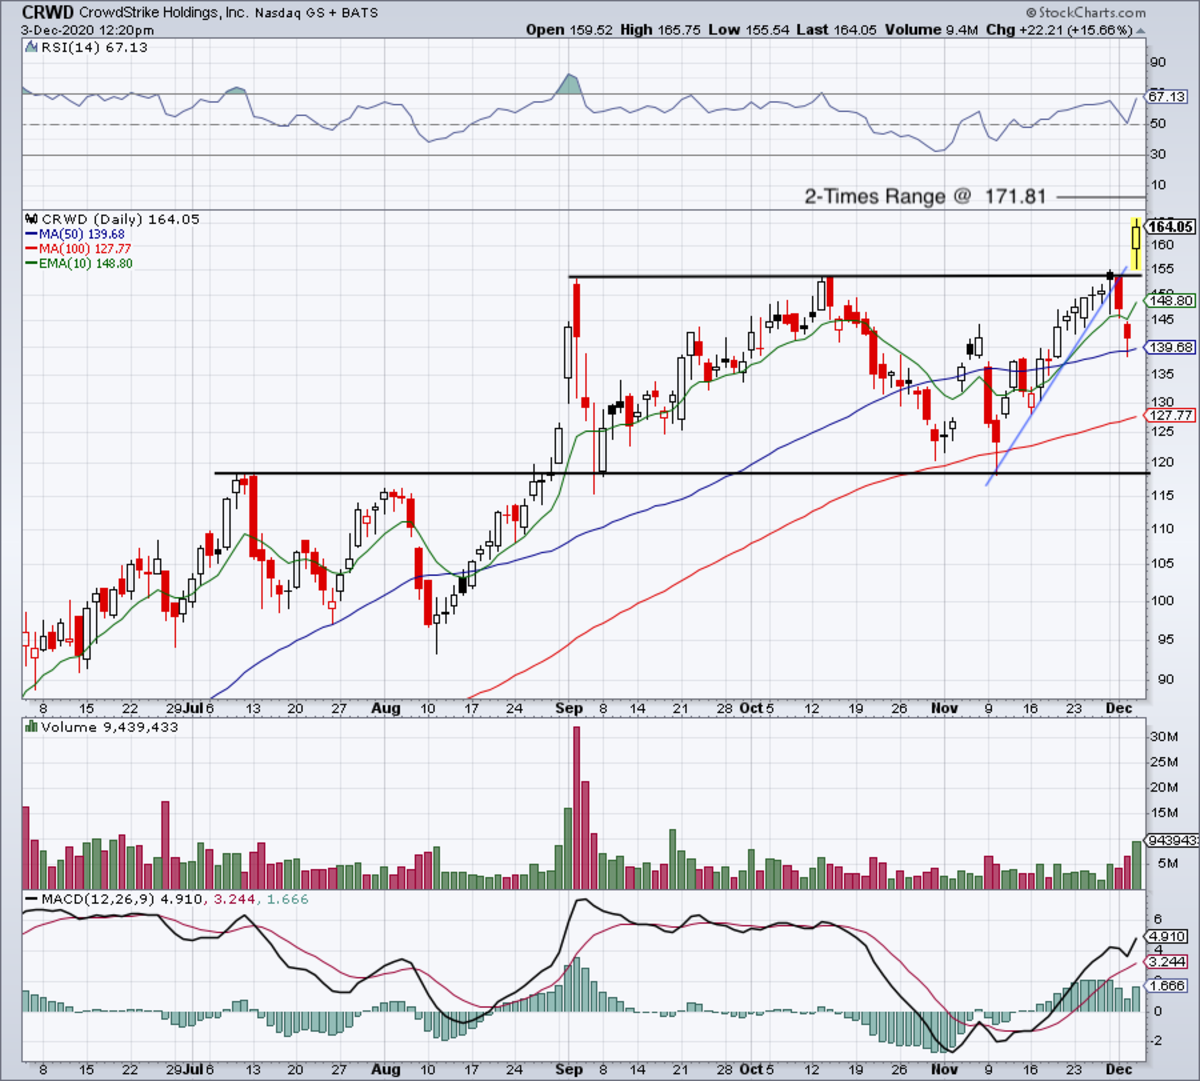 Daily chart of CrowdStrike stock.